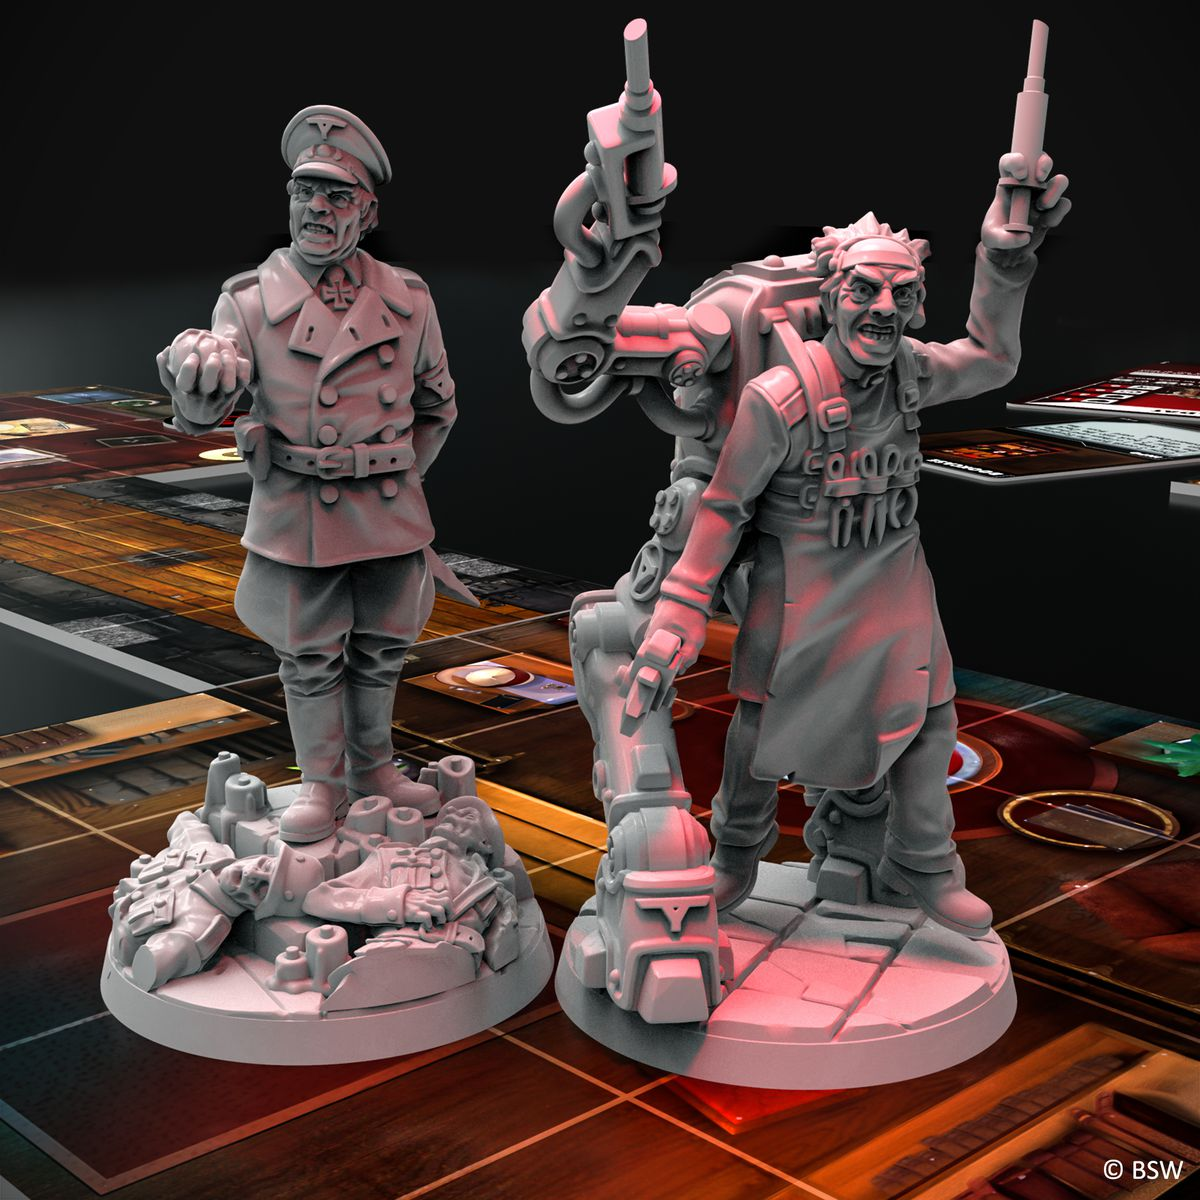 General Von Grimm and Prof. Bevli in miniature form. Grimm stands atop a pyre of desicated Nazi soldiers, while Bevli has a backpack with legs.